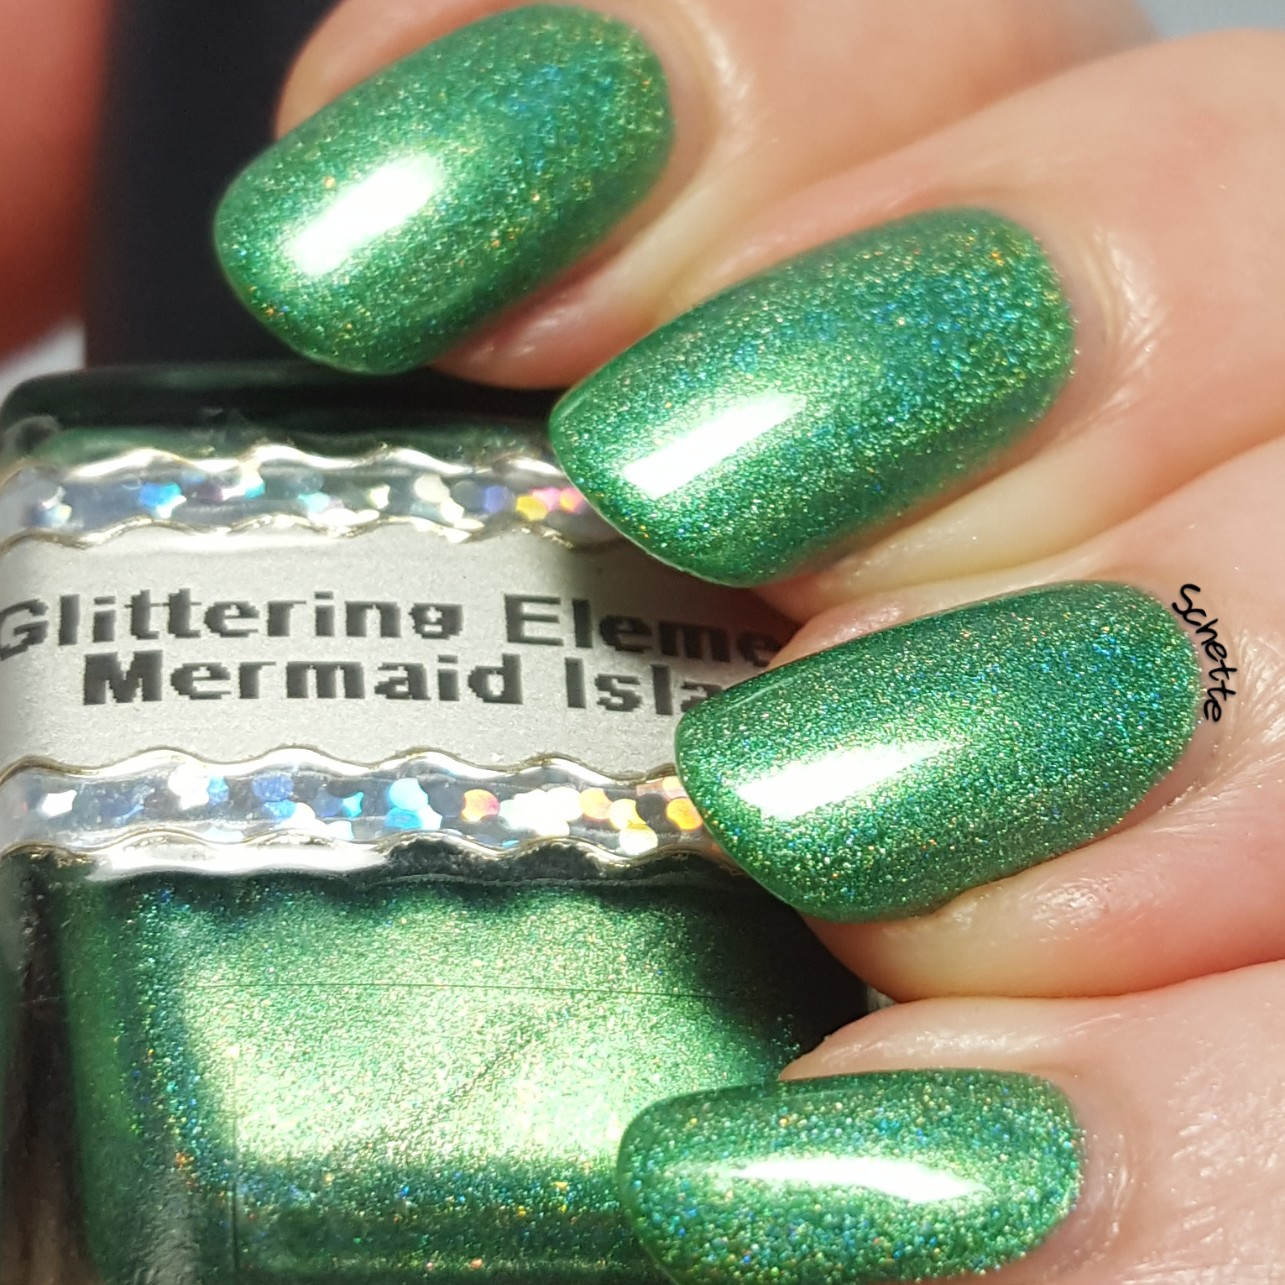 Glittering Elements - Mermaid Island